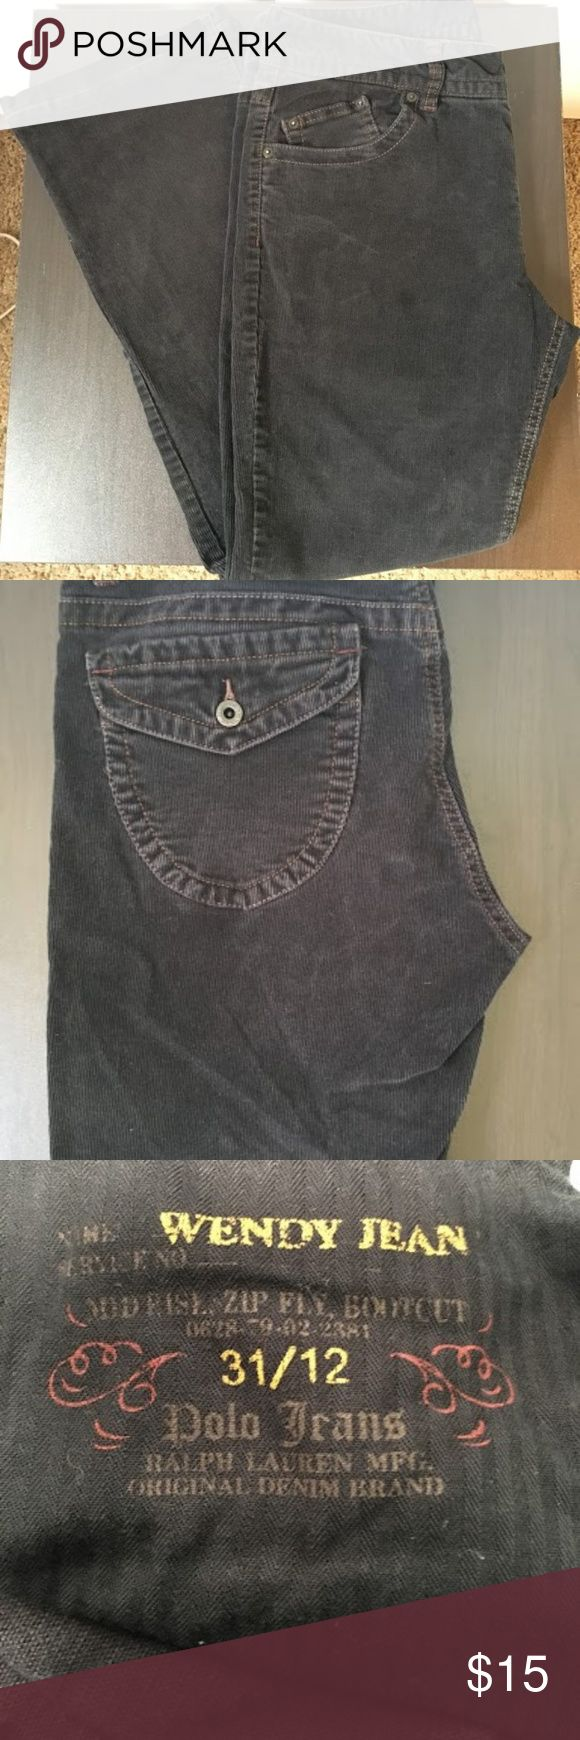 "Polo Ralph Lauren ""Wendy"" Cords Mid Bootcut Women's Polo Jeans by Ralph Lauren Wendy Jean Mid Rise Zip Fly Bootcut size 12 by 32  Cords.  Inseam measures 28   If you have any questions feel free to contact me at any time. I am always more than happy to help.  I have several other items for sale as well so be sure to check them out Polo by Ralph Lauren Pants Boot Cut & Flare"